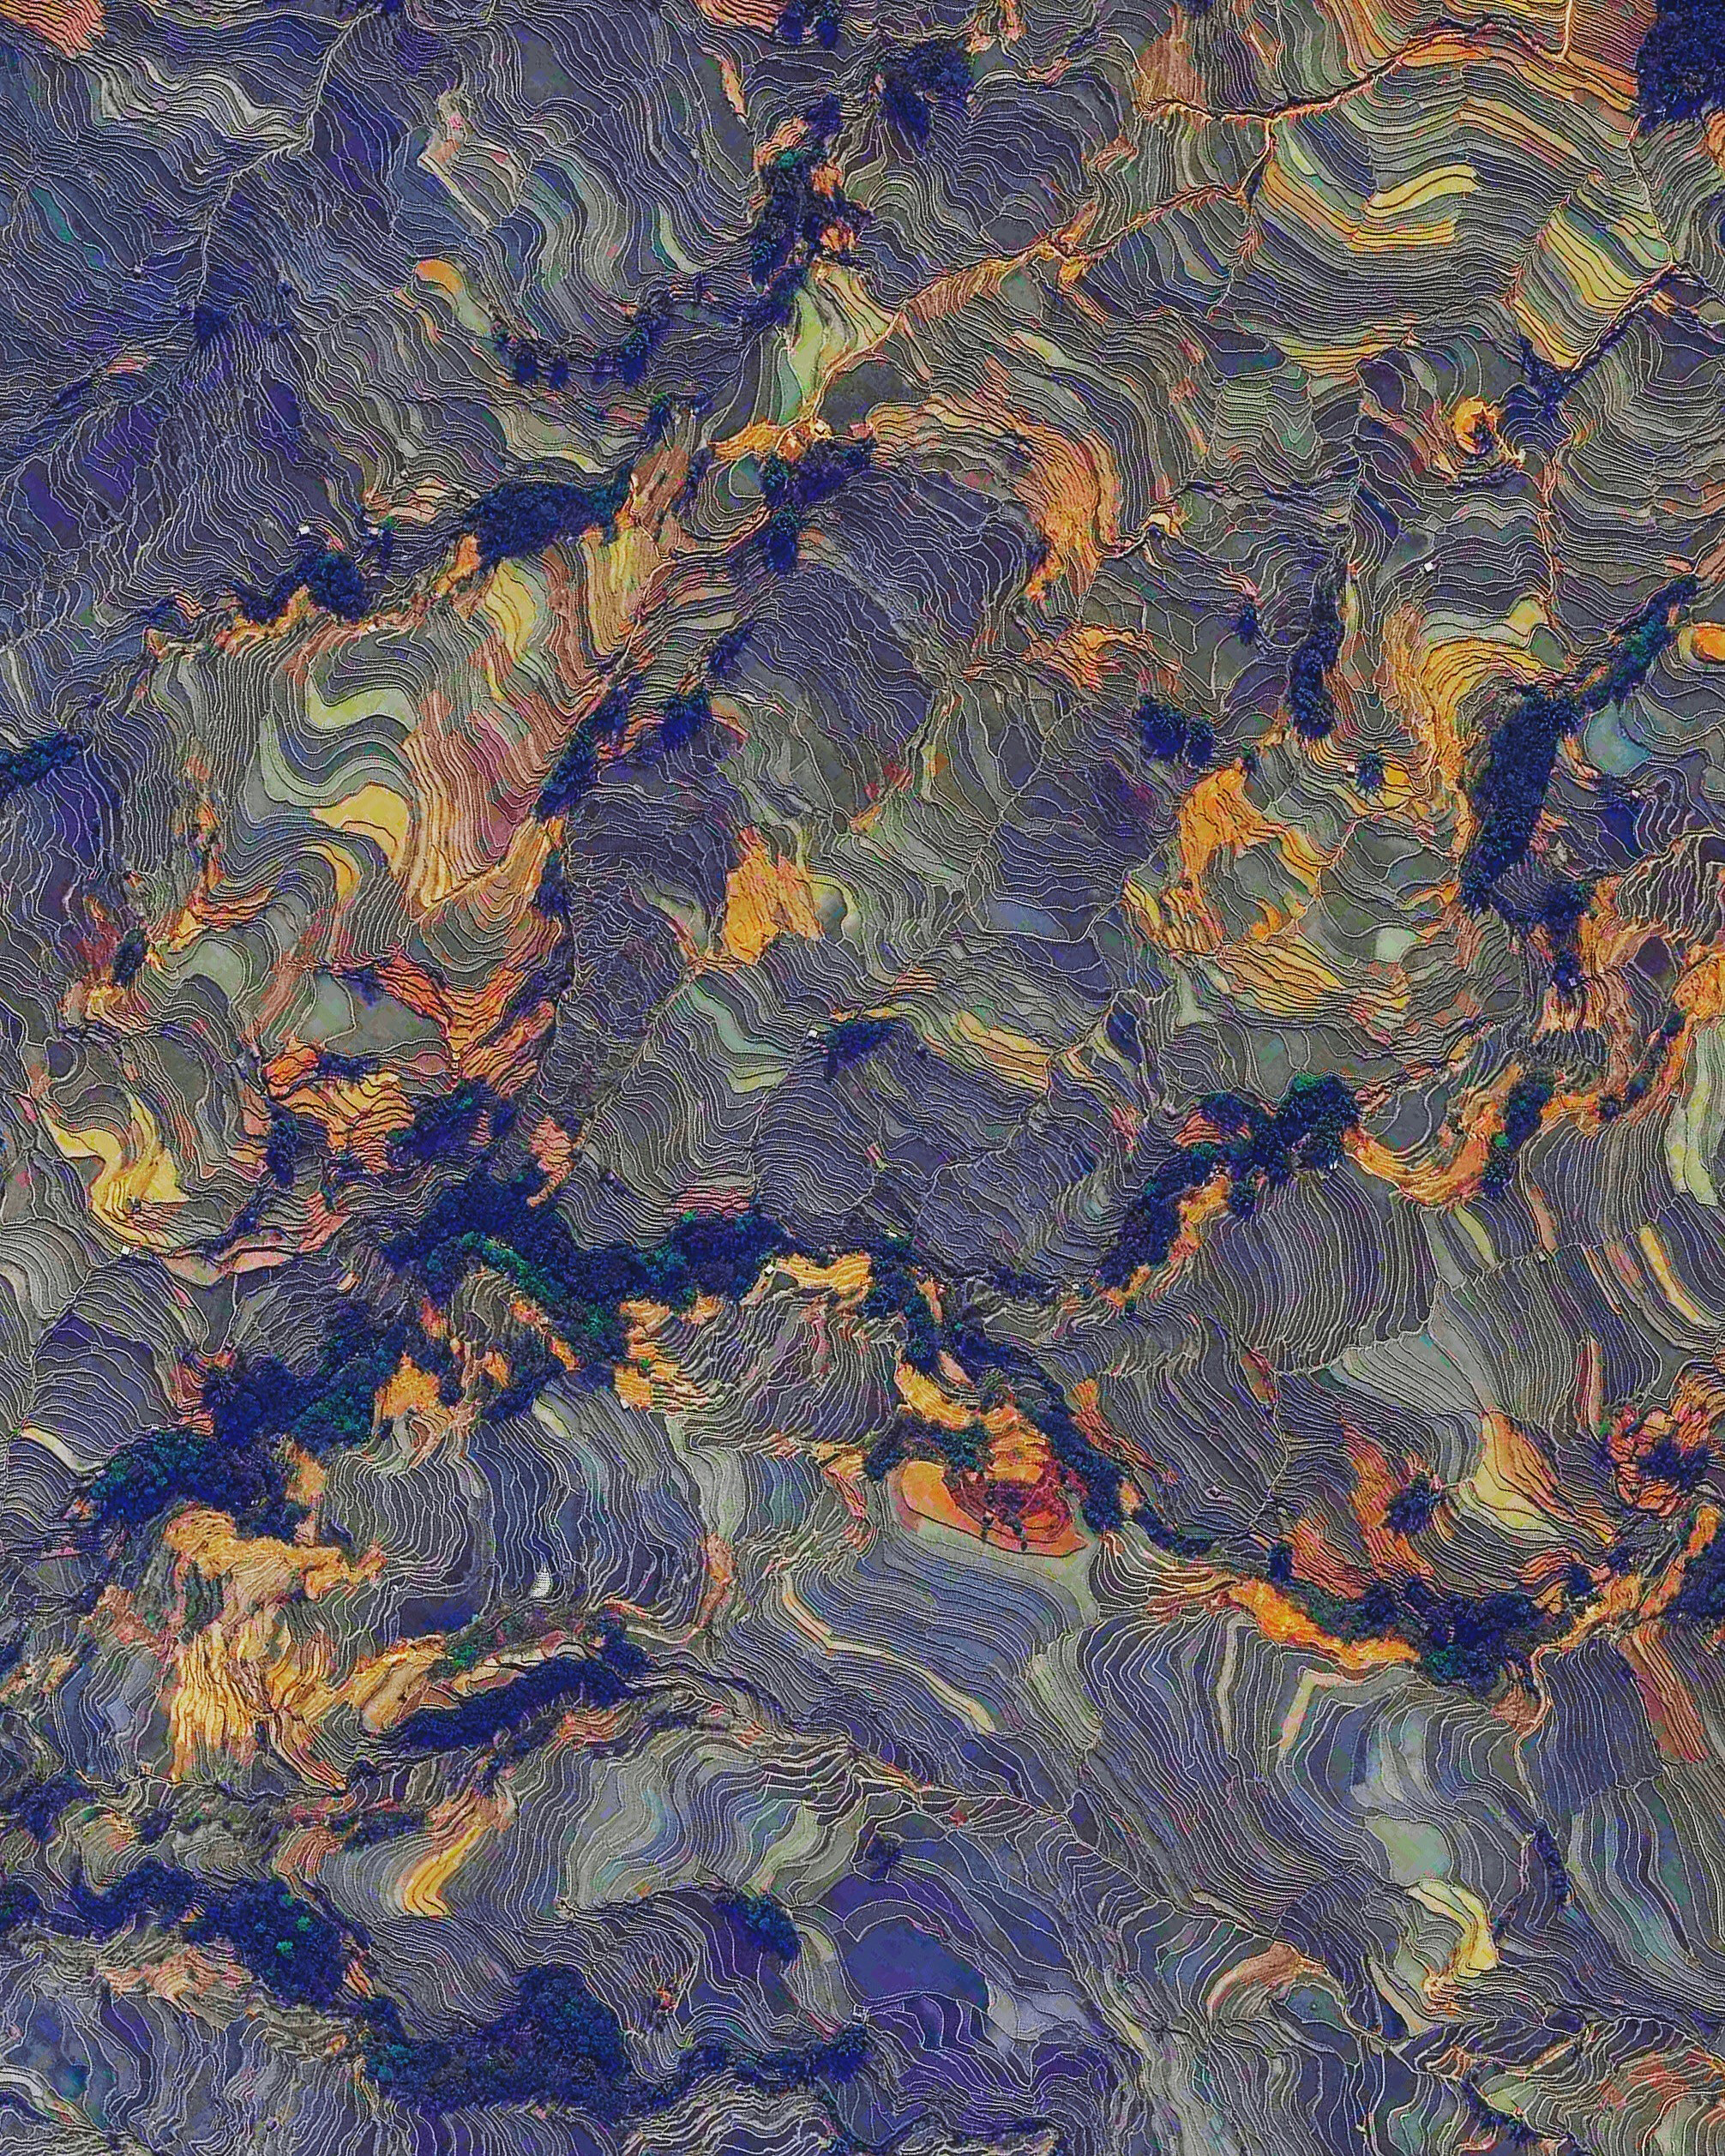 """Rice paddies cover the mountainsides of Yuanyang County, China. Constructed in """"steps"""" by the Hani people for the last 1300 years, the slope of the terraces varies from 15 to 75 degrees with some having as many as 3,000 steps! The stunning colors that you see here are indeed real and result from the presence of water and certain plants within the terraces.  23°09′32″N, 102°44′41″E  Source imagery: DigitalGlobe"""